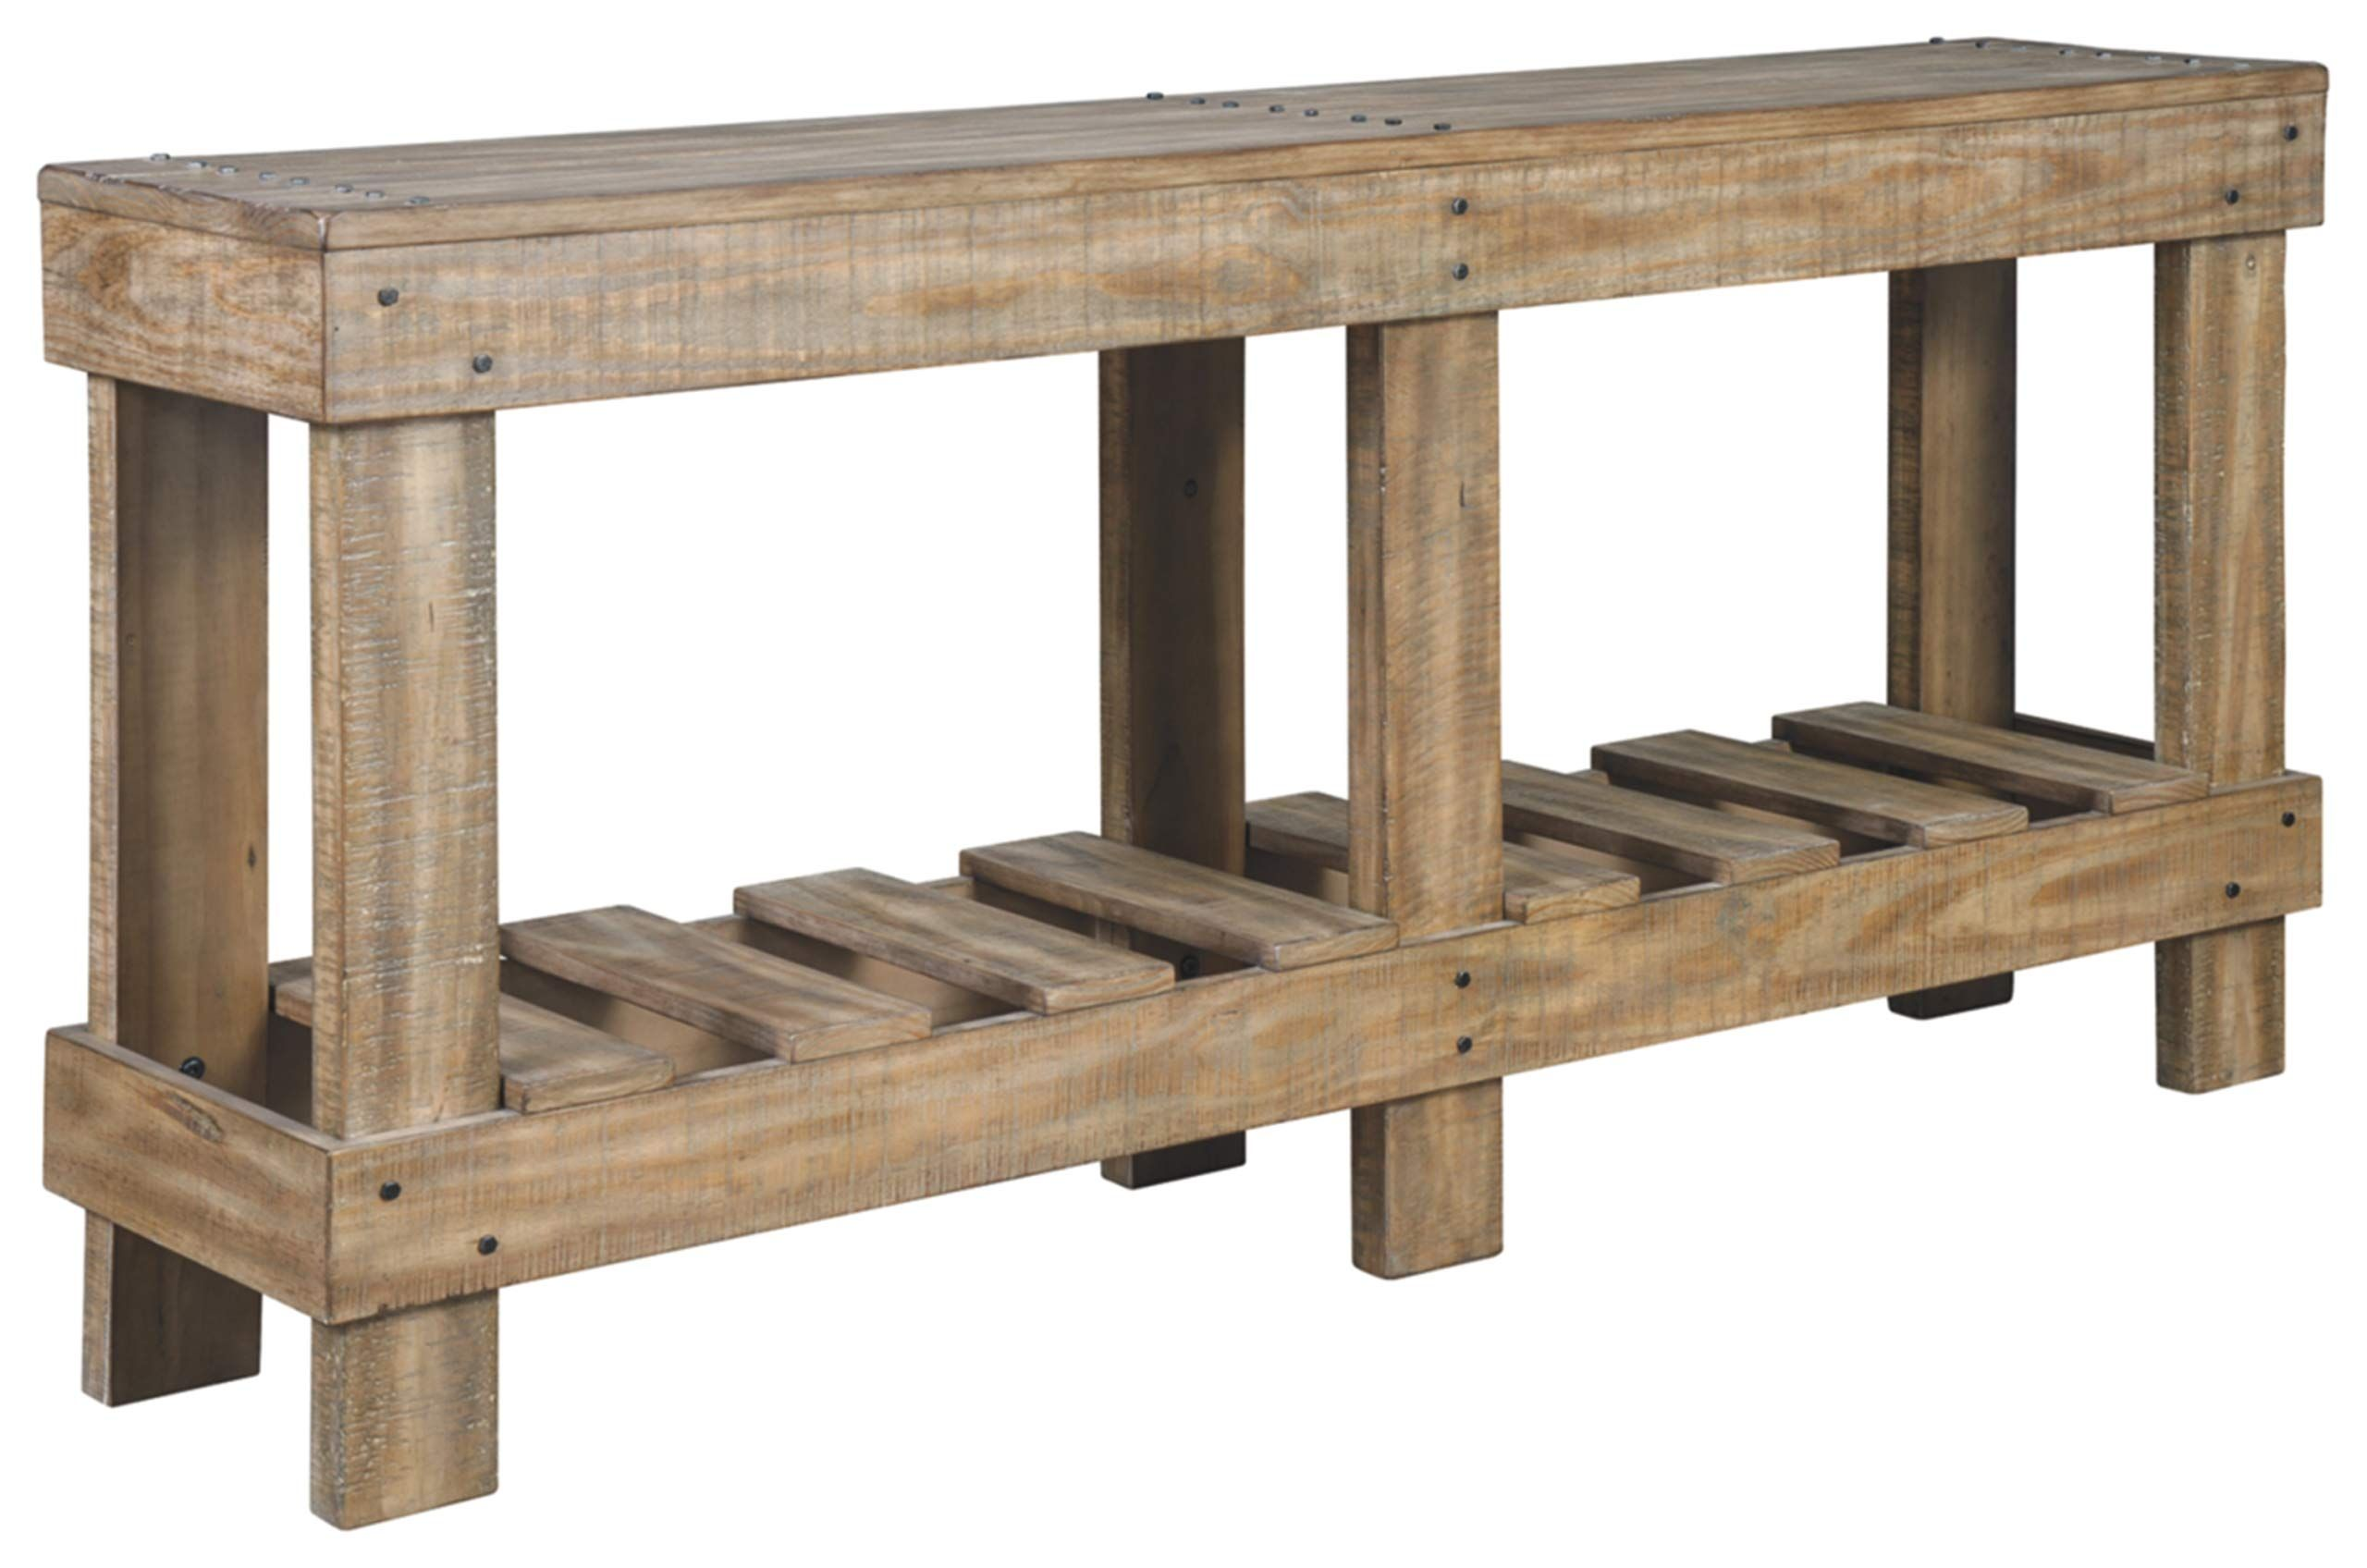 Signature Design By Ashley Susandeer Console Sofa Table Farmhouse Casual Brown In 2020 Sofa Table Furniture Wood Console